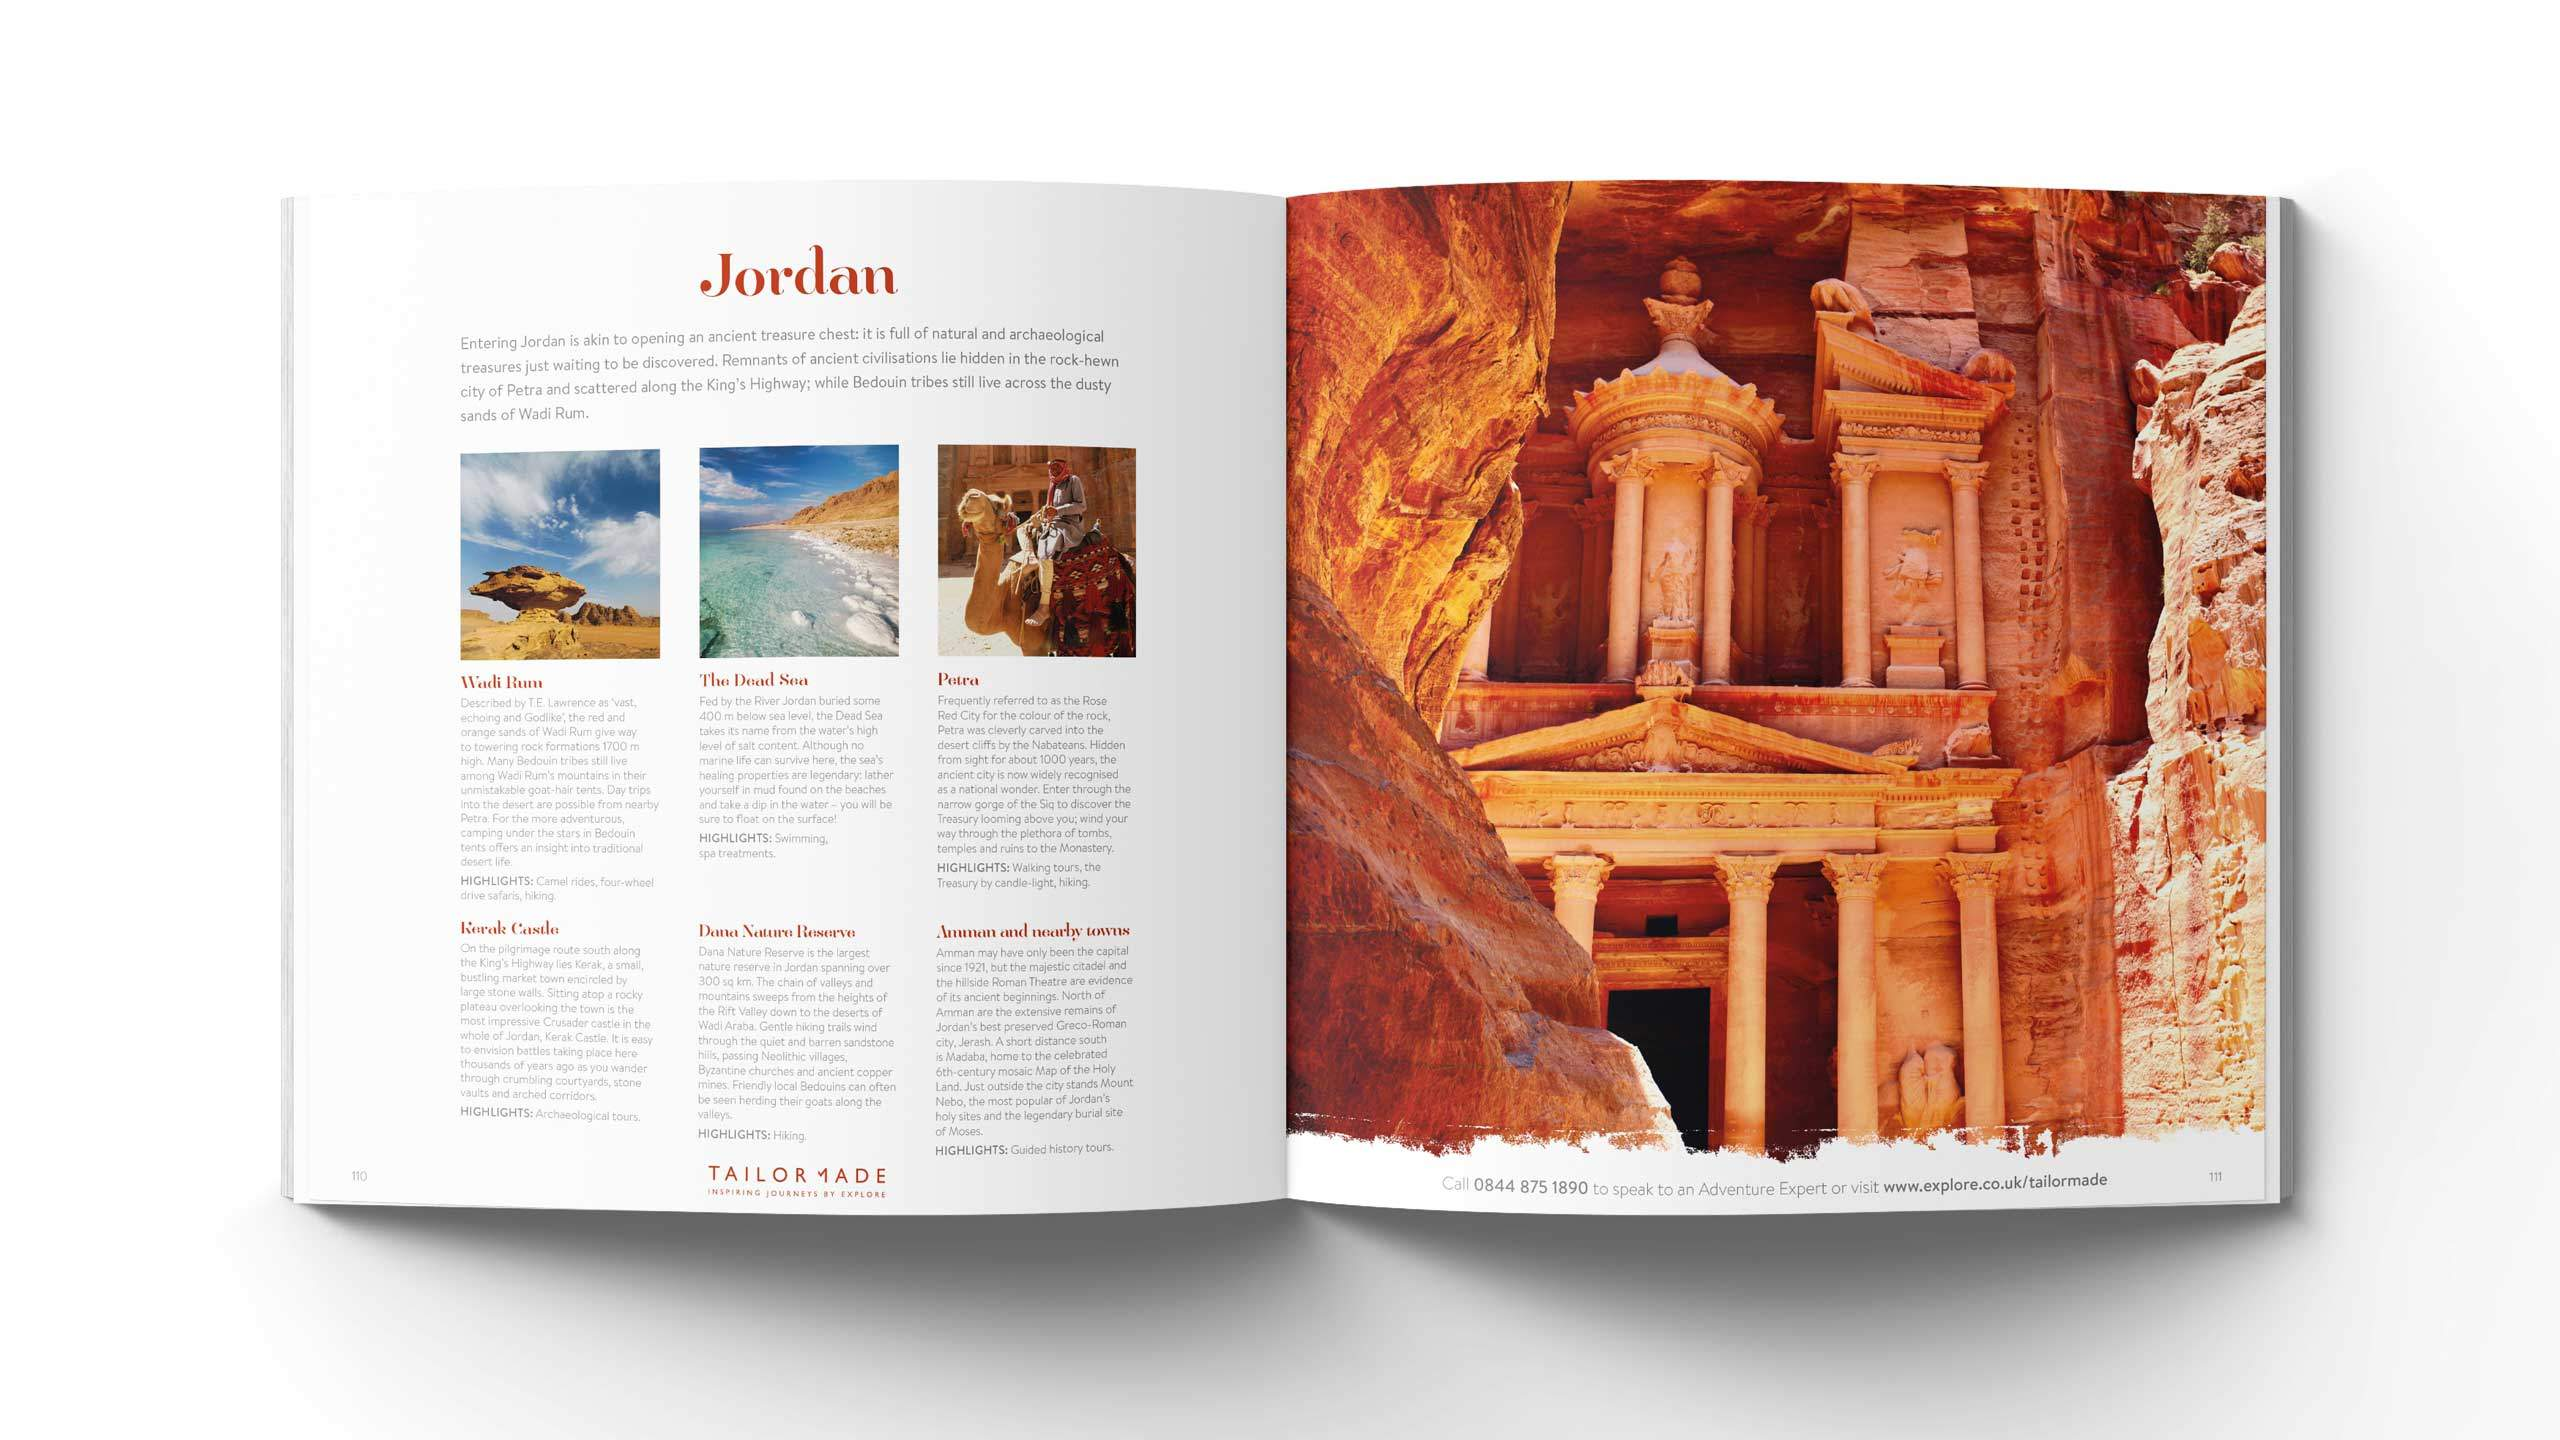 bespoke travel brochure design jordon petra pages explore tailor made